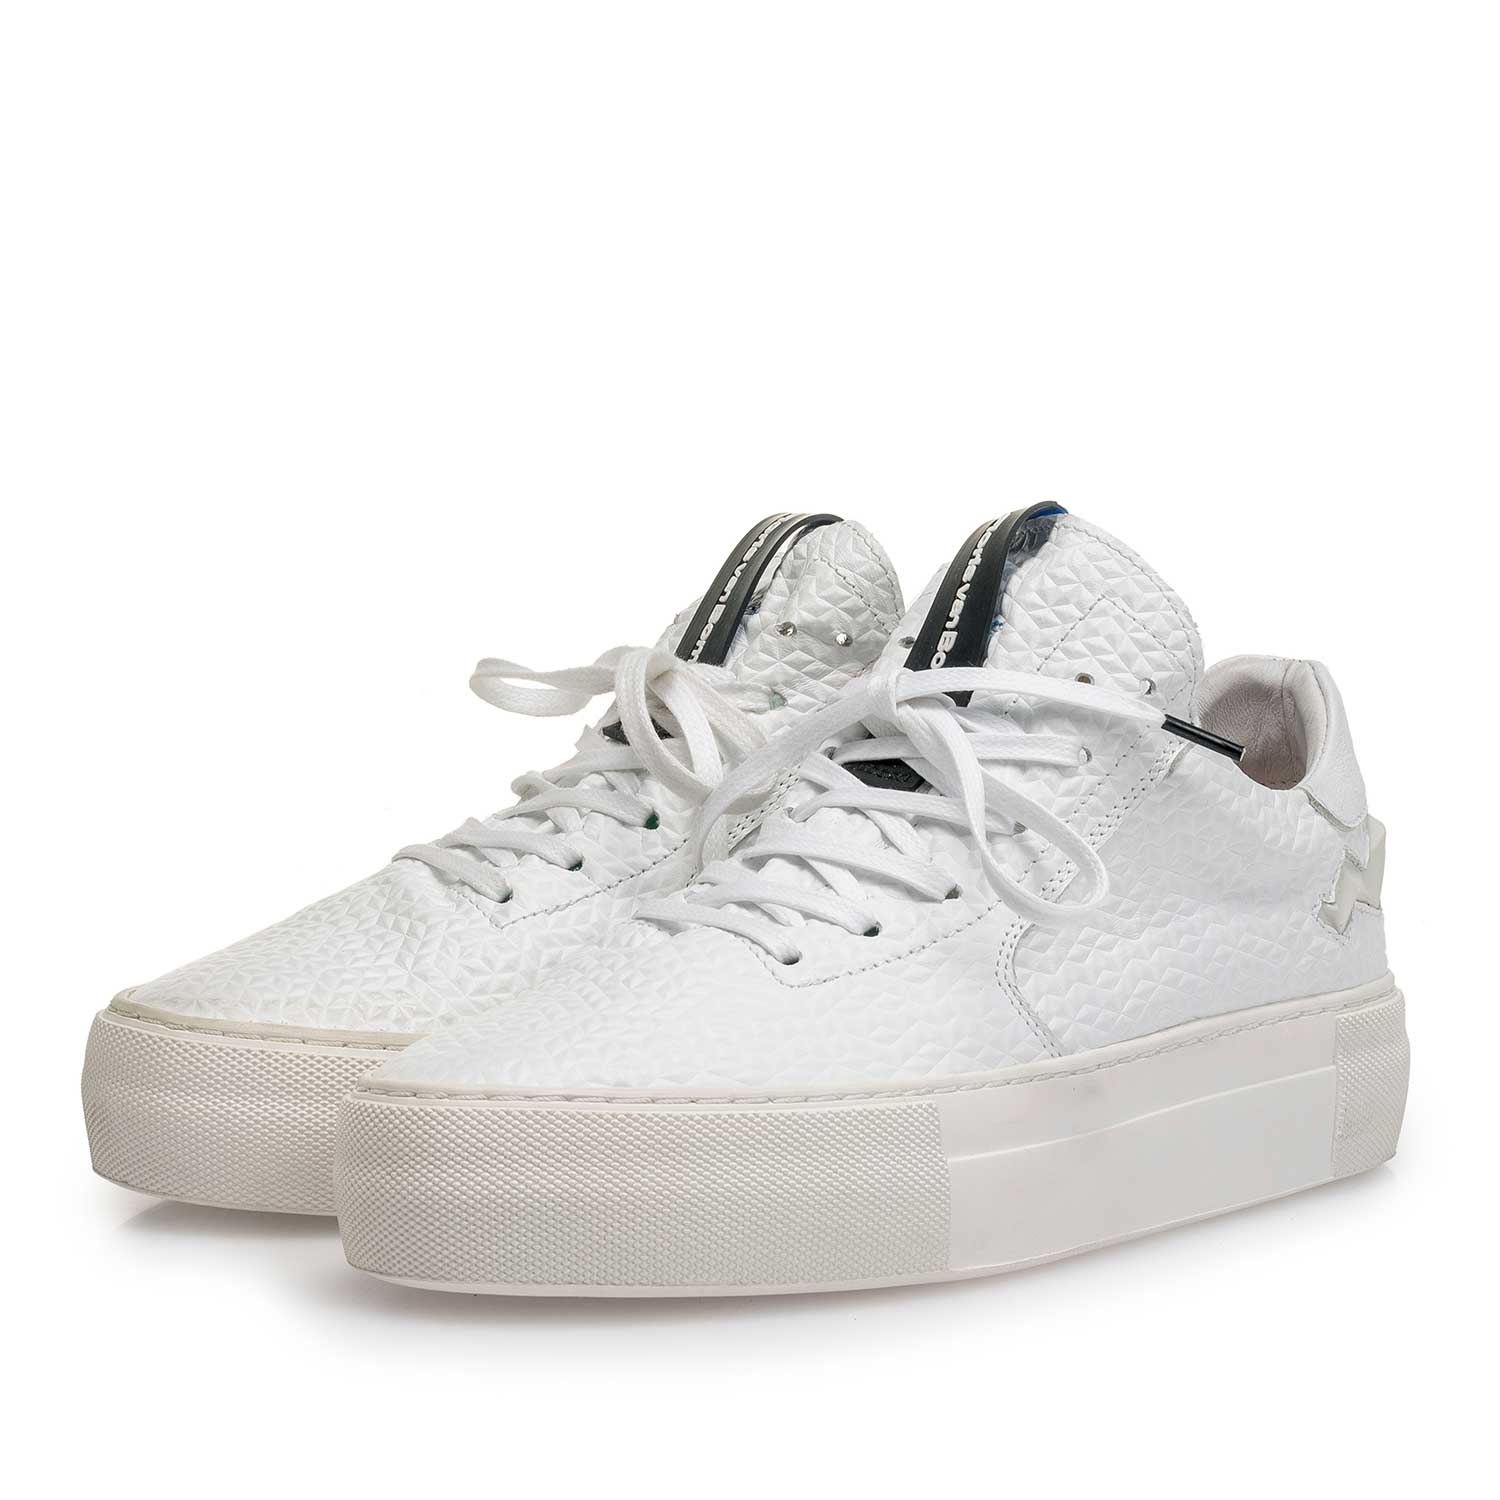 85268/02 - White structured leather sneaker